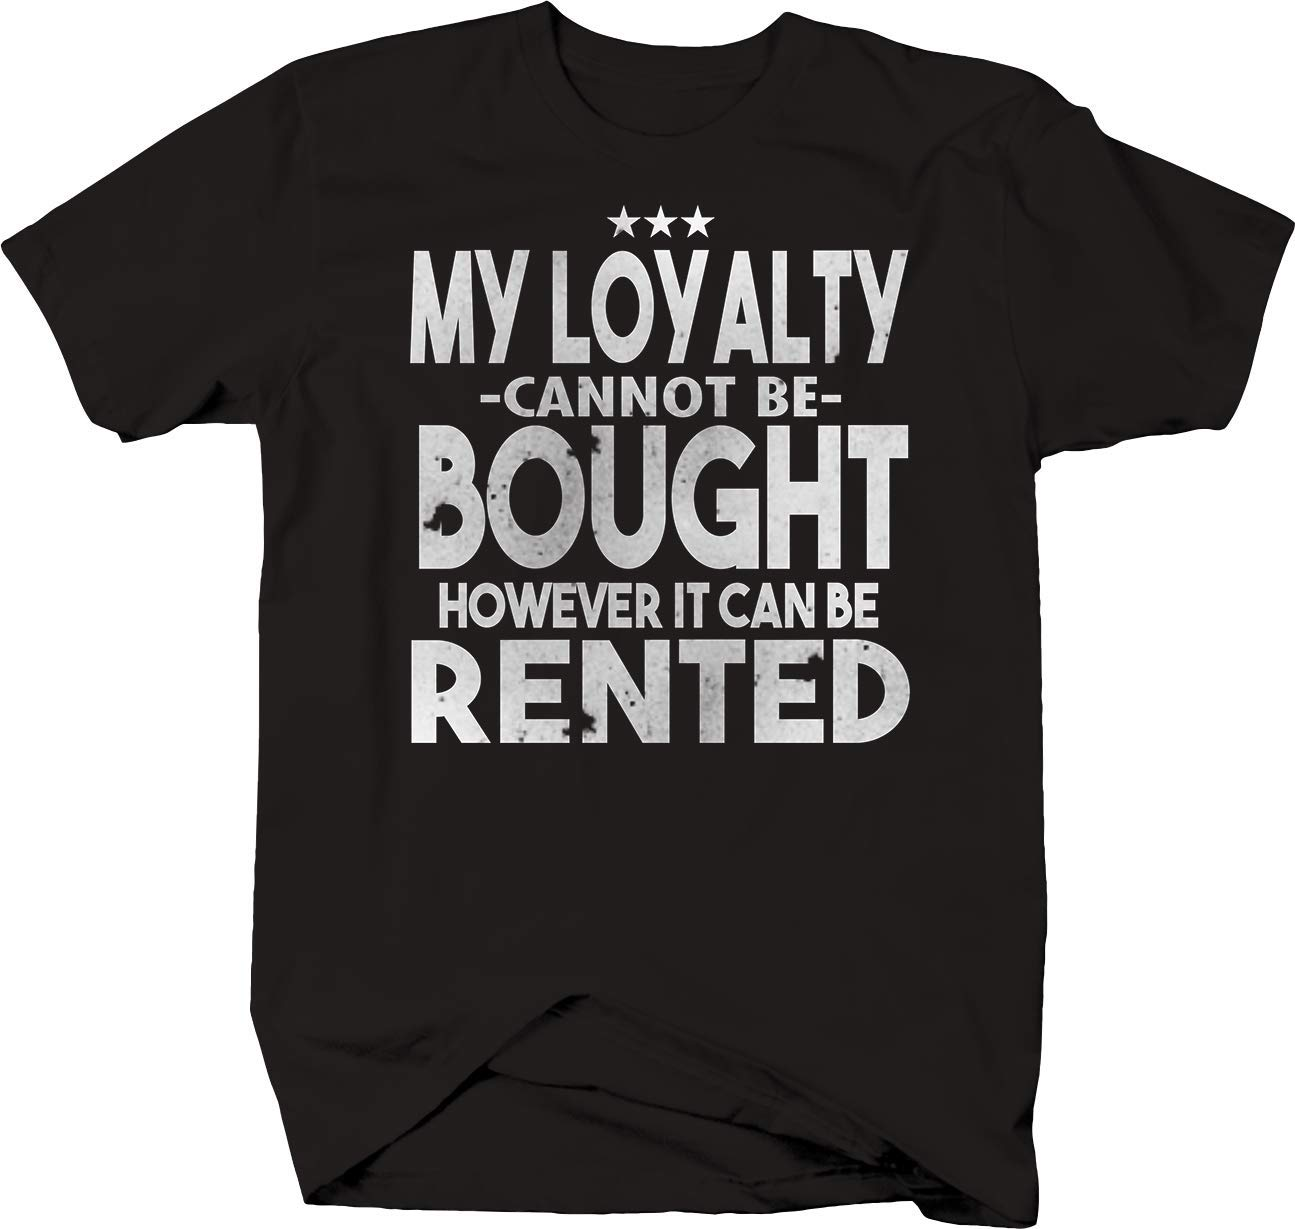 Loyalty Cannot Be Bought However Can Be Rented Funny Humor Joke Tshirt 5